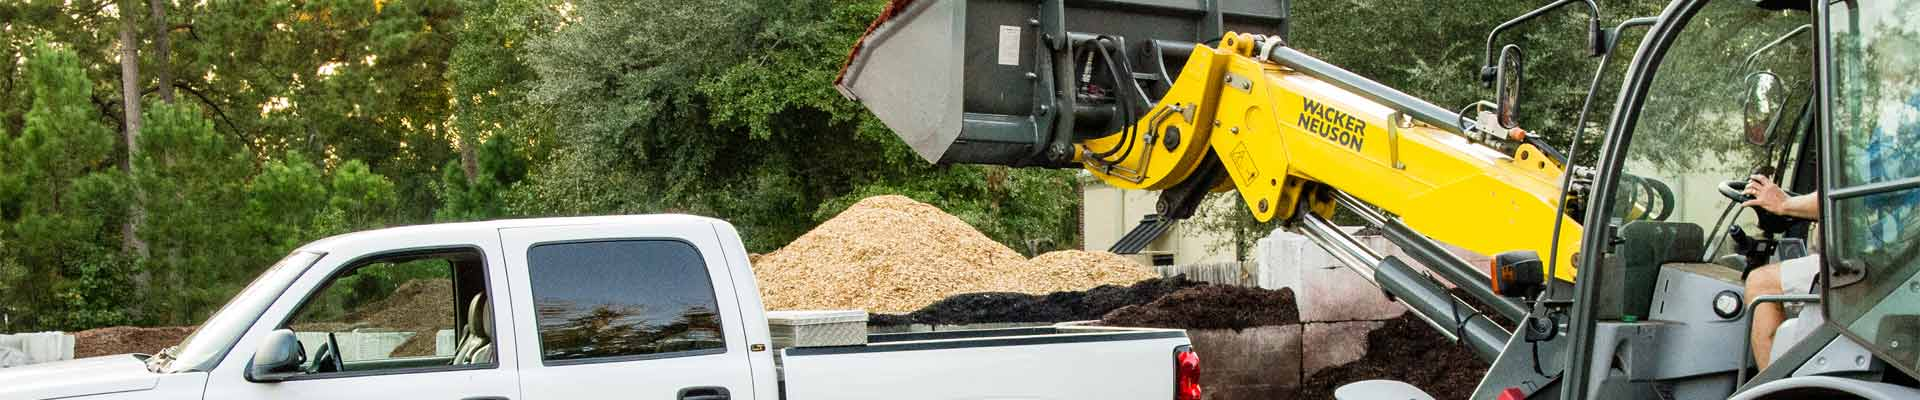 Pickup mulch at All Seasons using your own vehicle or truck